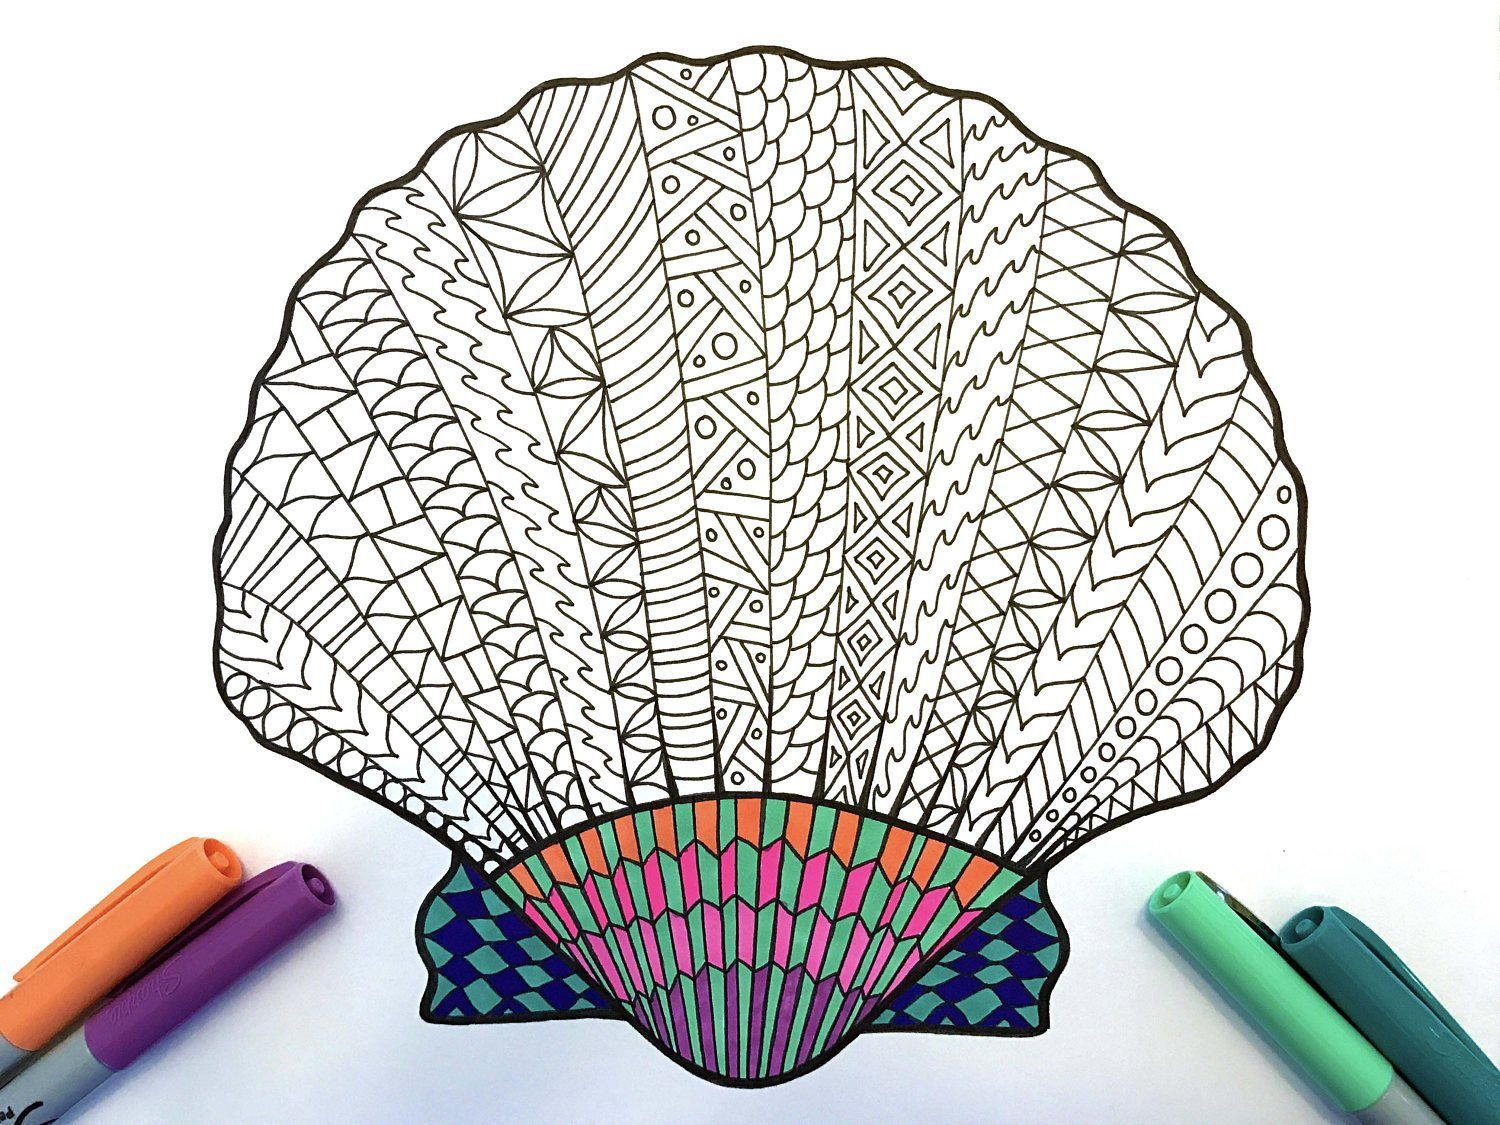 Clam Shell Pdf Zentangle Coloring Page Scribble Stitch Color Pencil Drawing Coloring Pages Zentangle Designs